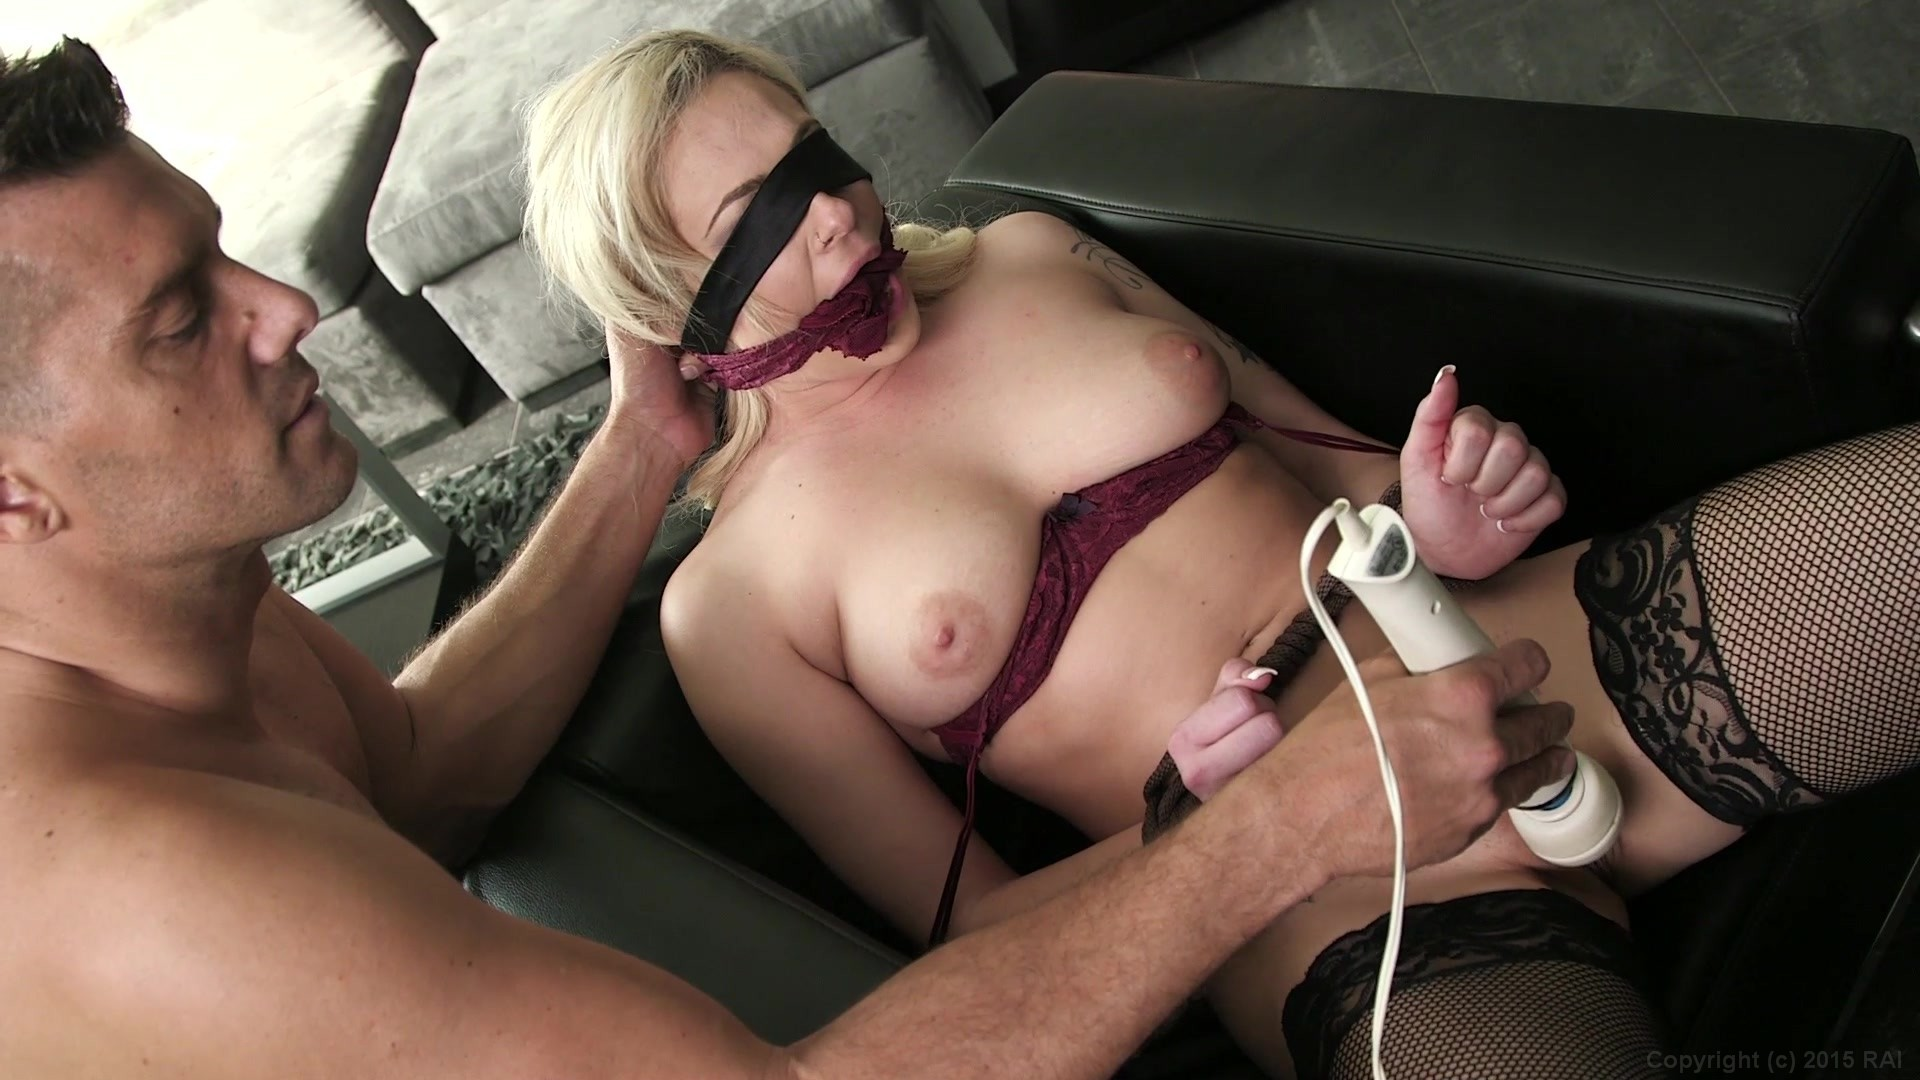 Busey Pusy High Quality Porn Photo